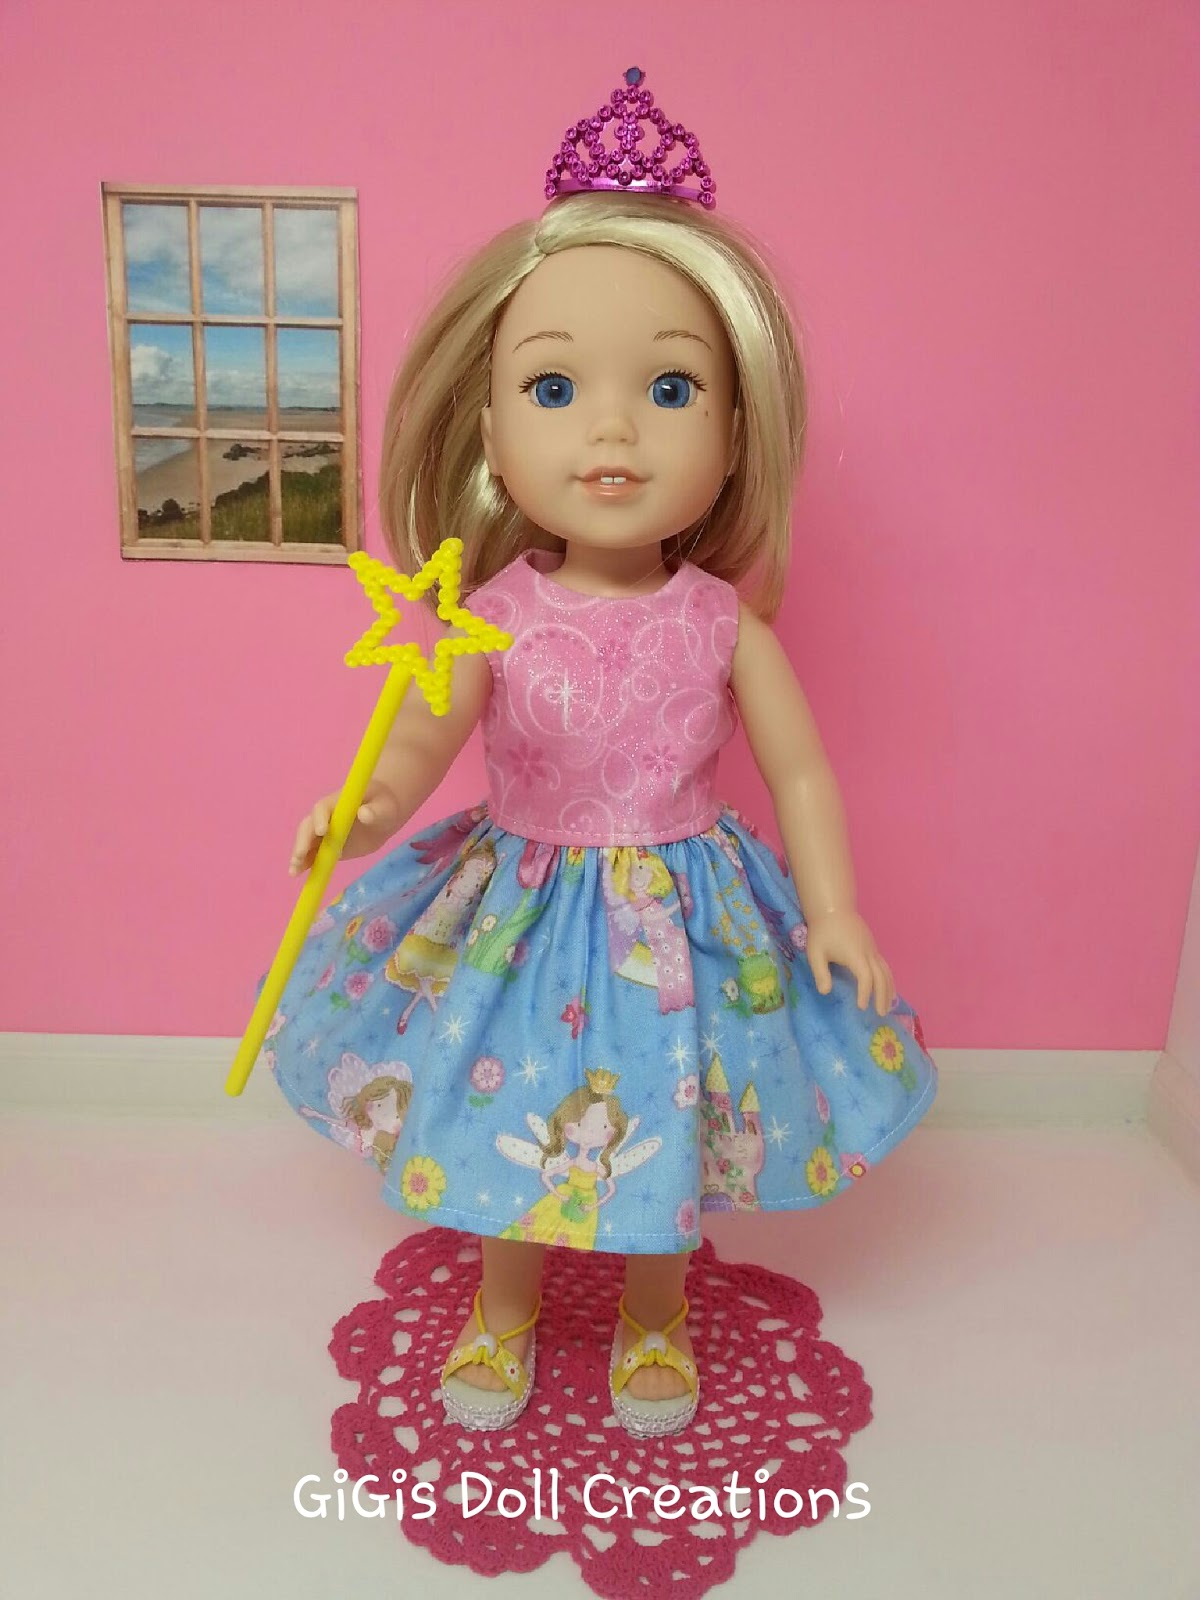 The Dolls Between Us: GiGi's Doll And Craft Creations: Clothing And Shoes For